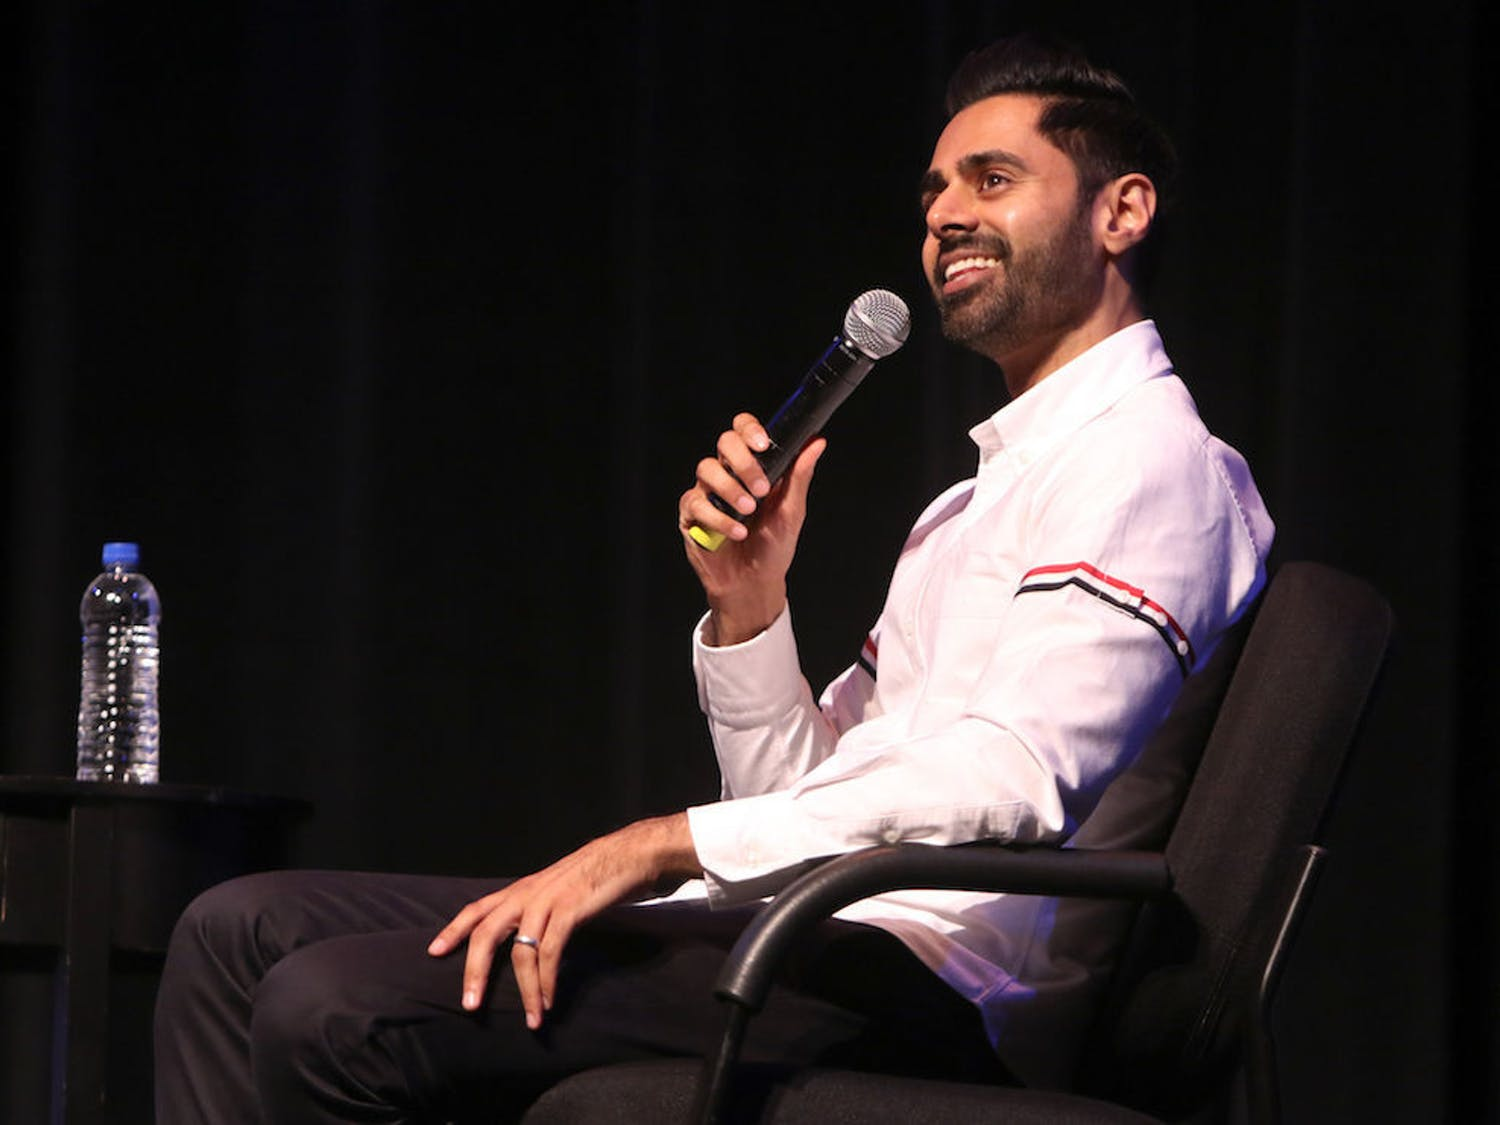 """Hasan Minhaj, a 33-year-old comedian known for his time as a correspondent on """"The Daily Show"""" and his Netflix show """"Patriot Act with Hasan Minhaj,"""" answers questions Thursday at the Phillips Center for the Performing Arts. Around 1,750 attendees watched Minhaj answer questions asked by UF School of Journalism and Communications professor Mike Foley."""